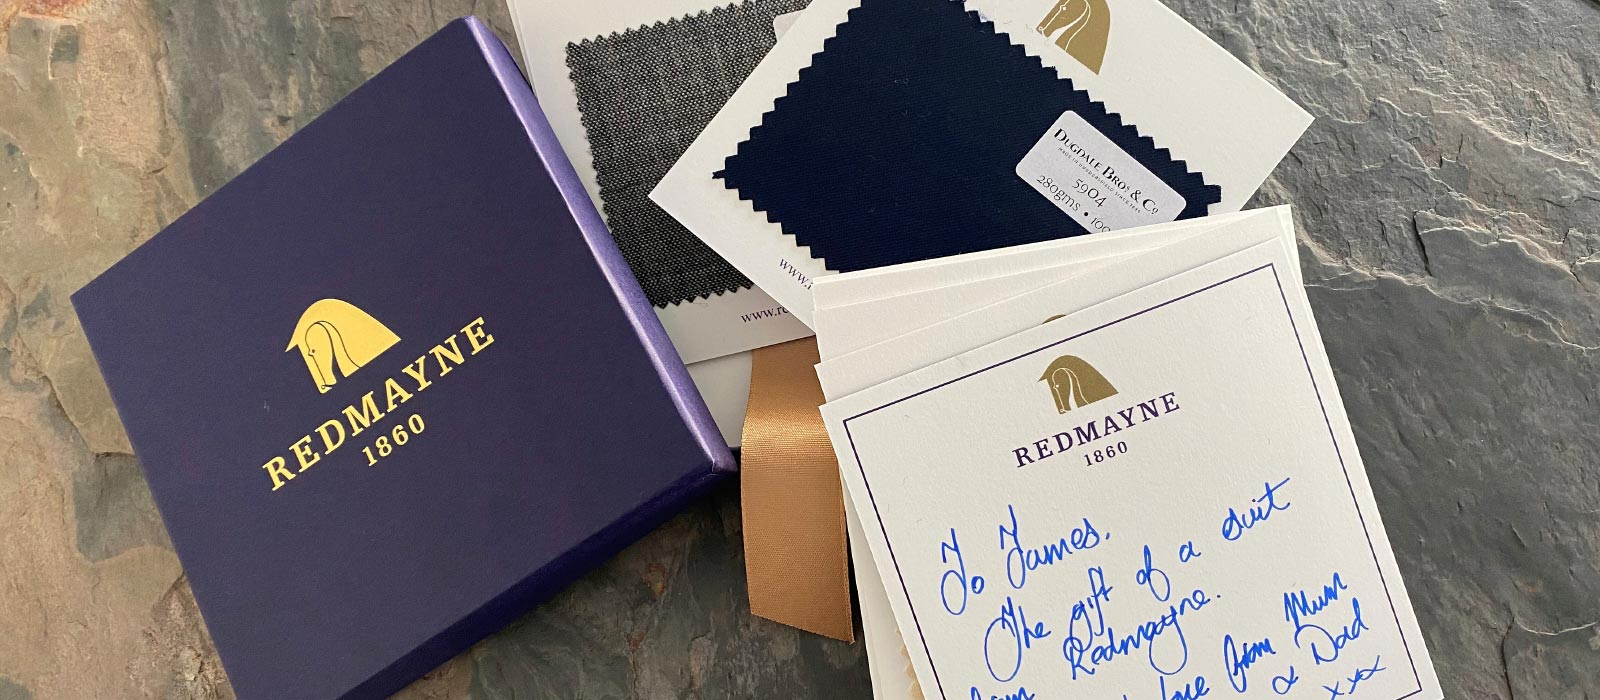 Redmayne Suit In A Box, the perfect gift.